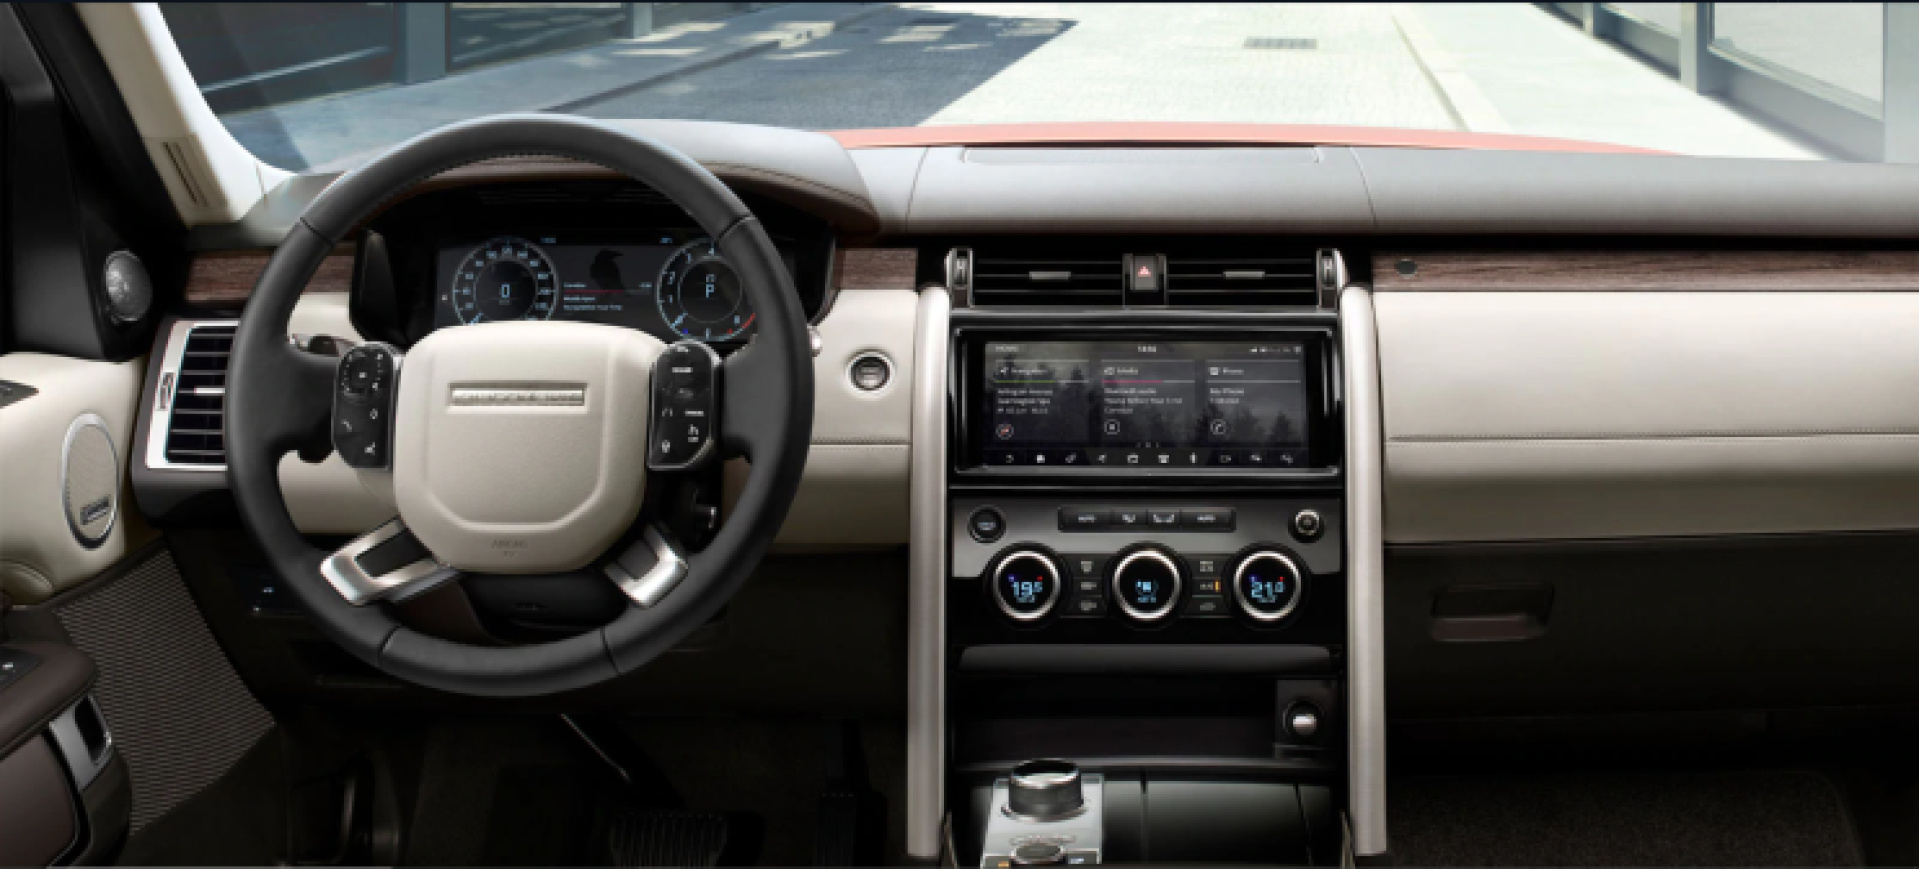 Land Rover-Land Rover Discovery-3